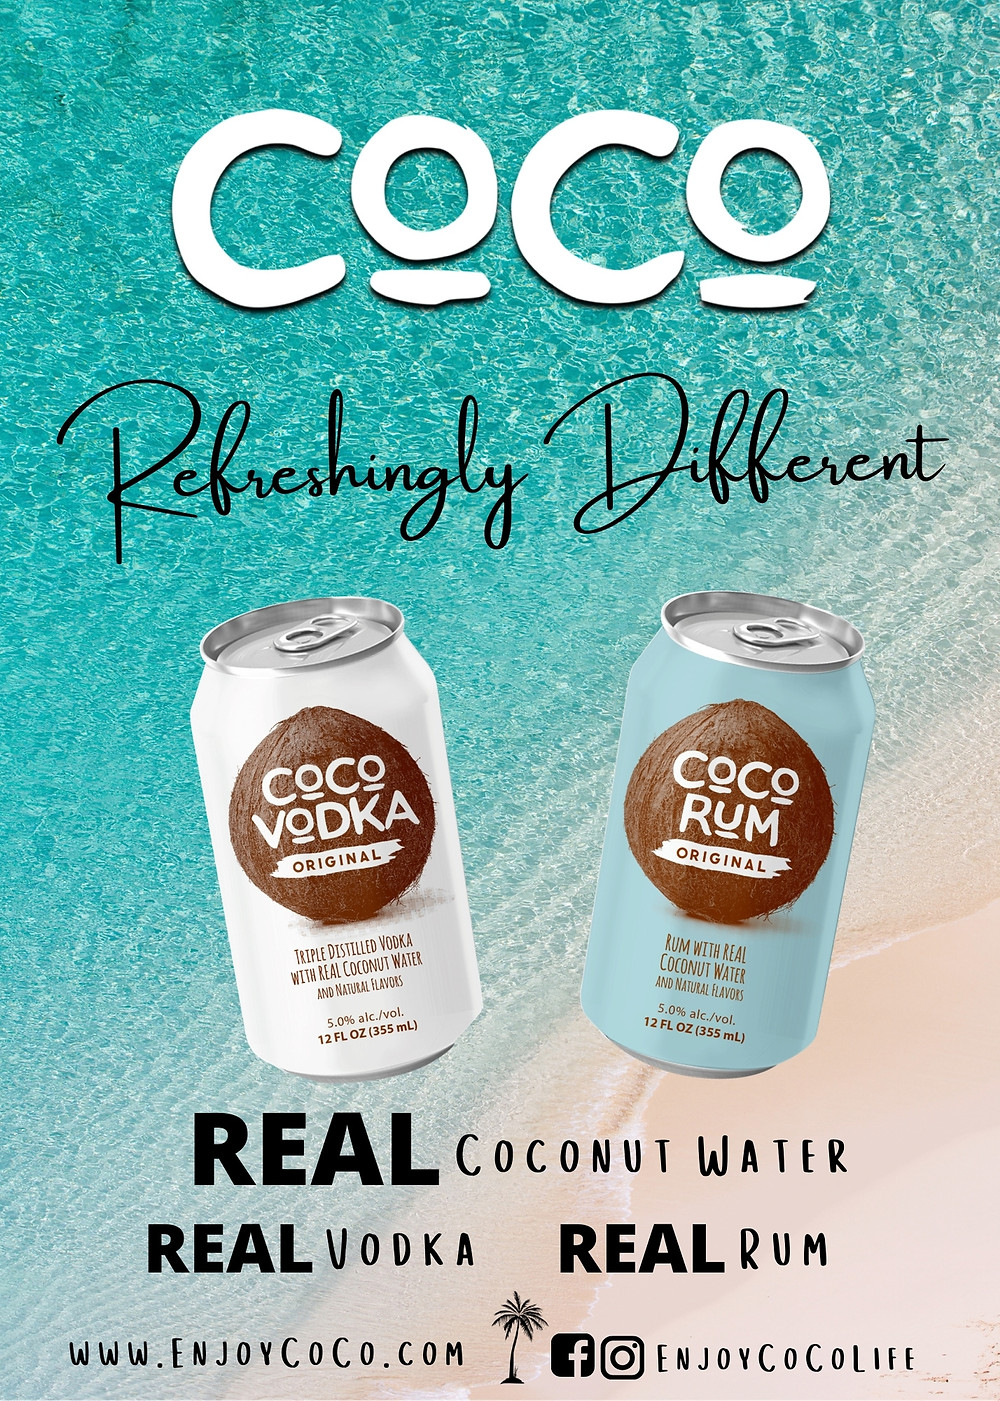 Enjoy Coco vodka and Coco Rum.  Refreshingly Different and Tasty.